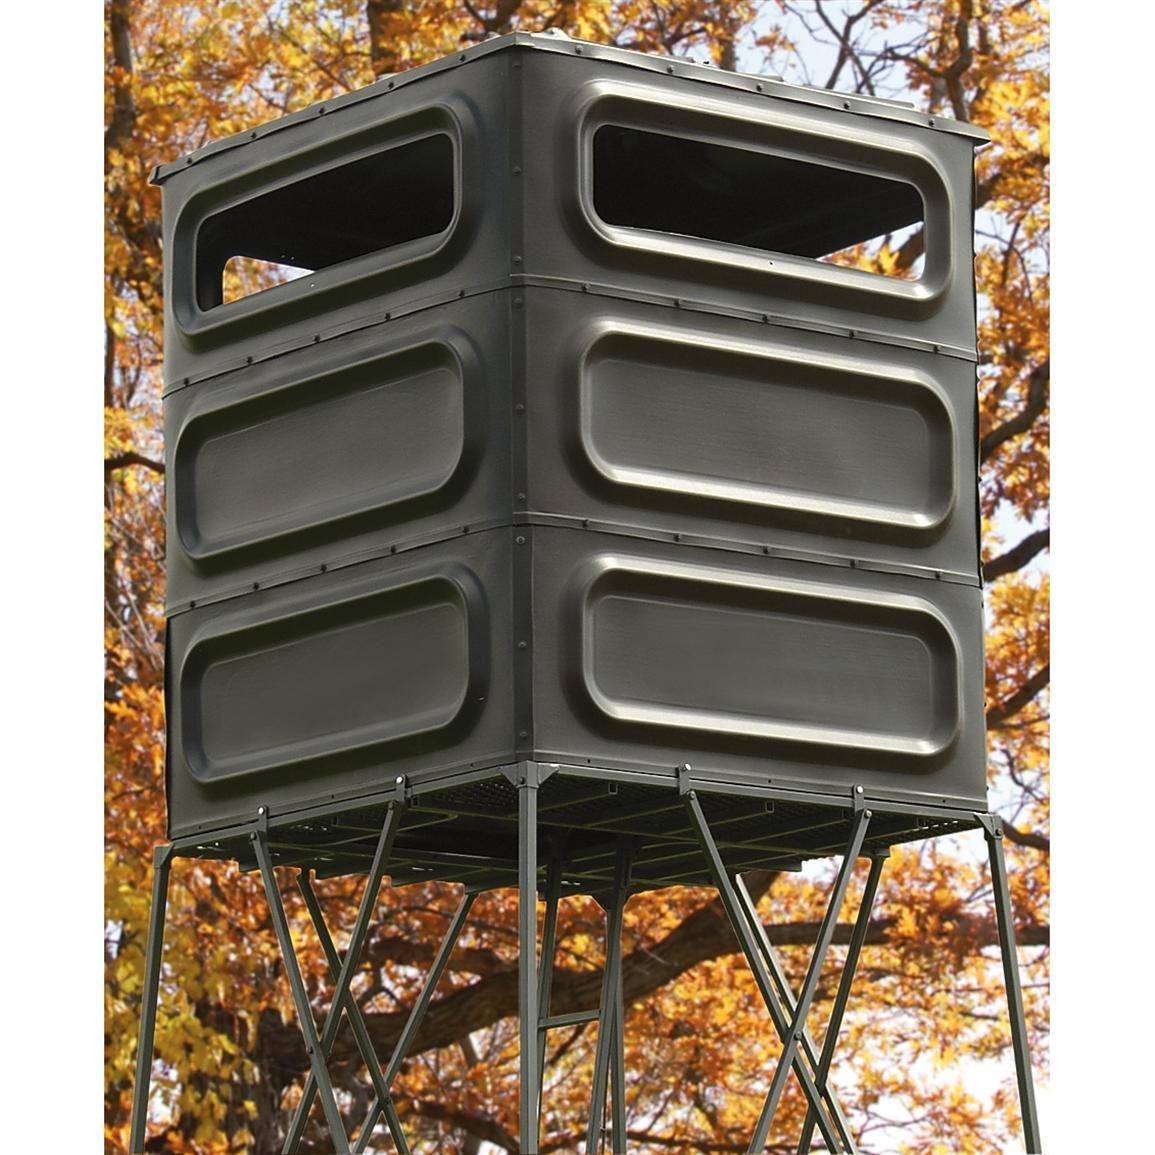 10' Box Stand Hunting | Deluxe, Sturdy, Well-designed Elevated Hidden Hunting Treehouse.